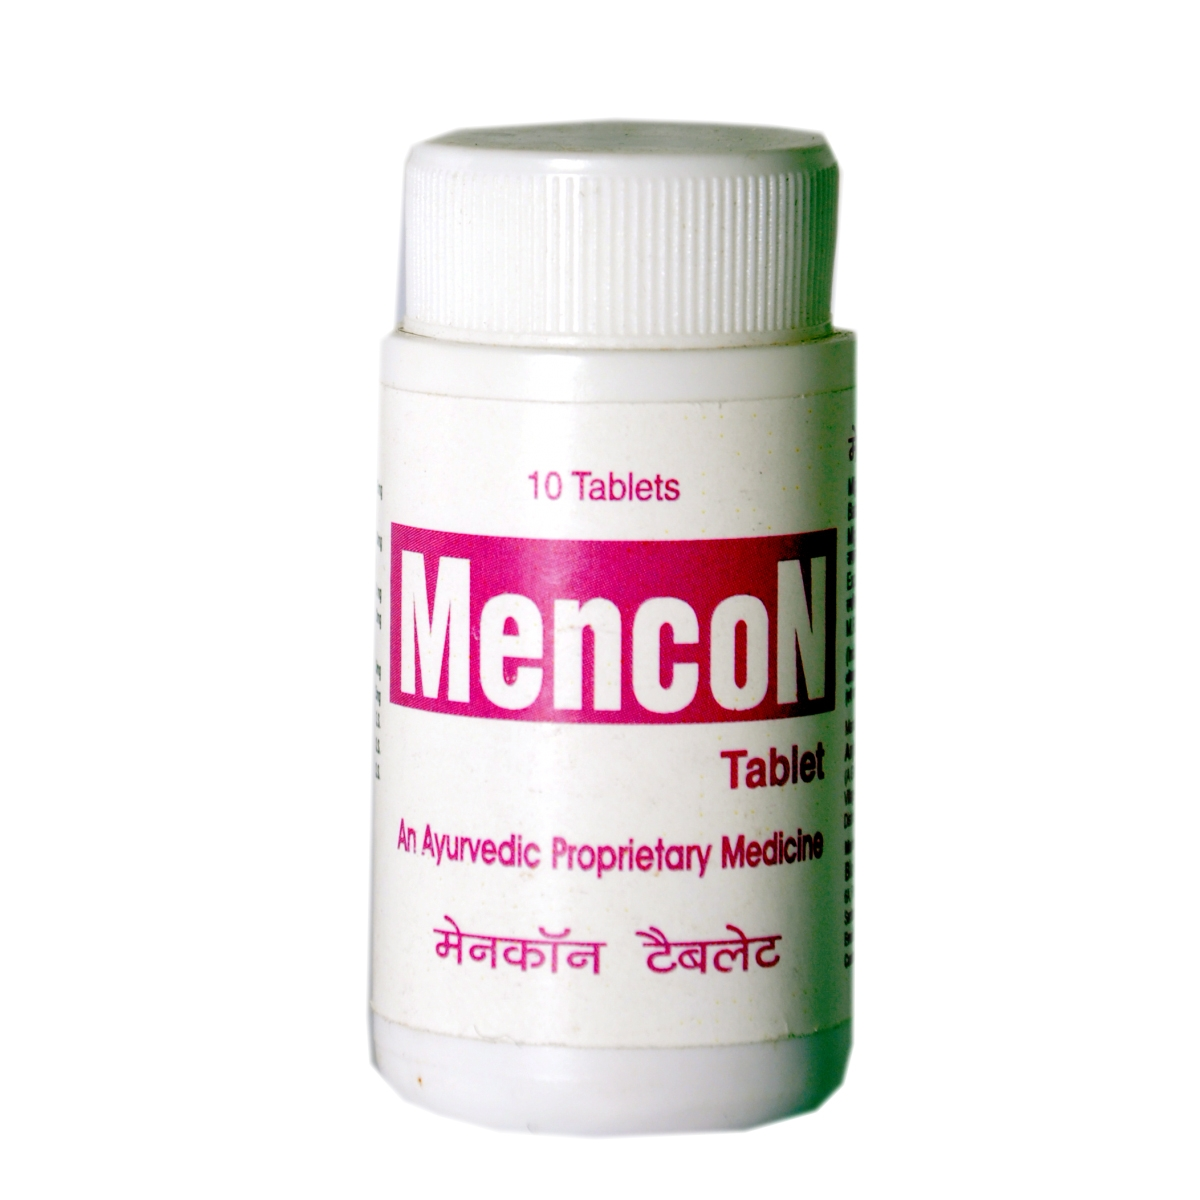 Mencon Tablet In Lajpat Nagar